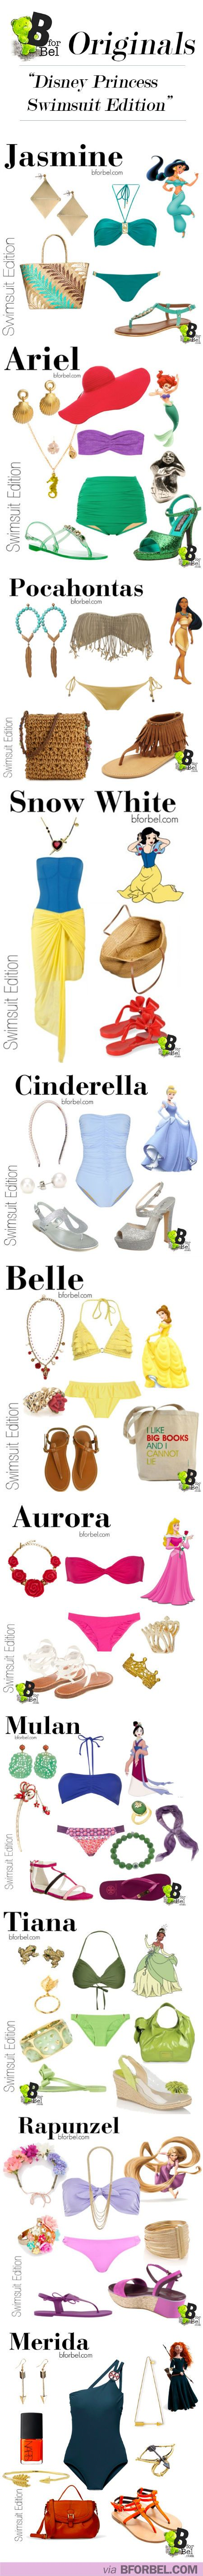 Swimwear: Disney Princess Style. More of an idea for the colors.